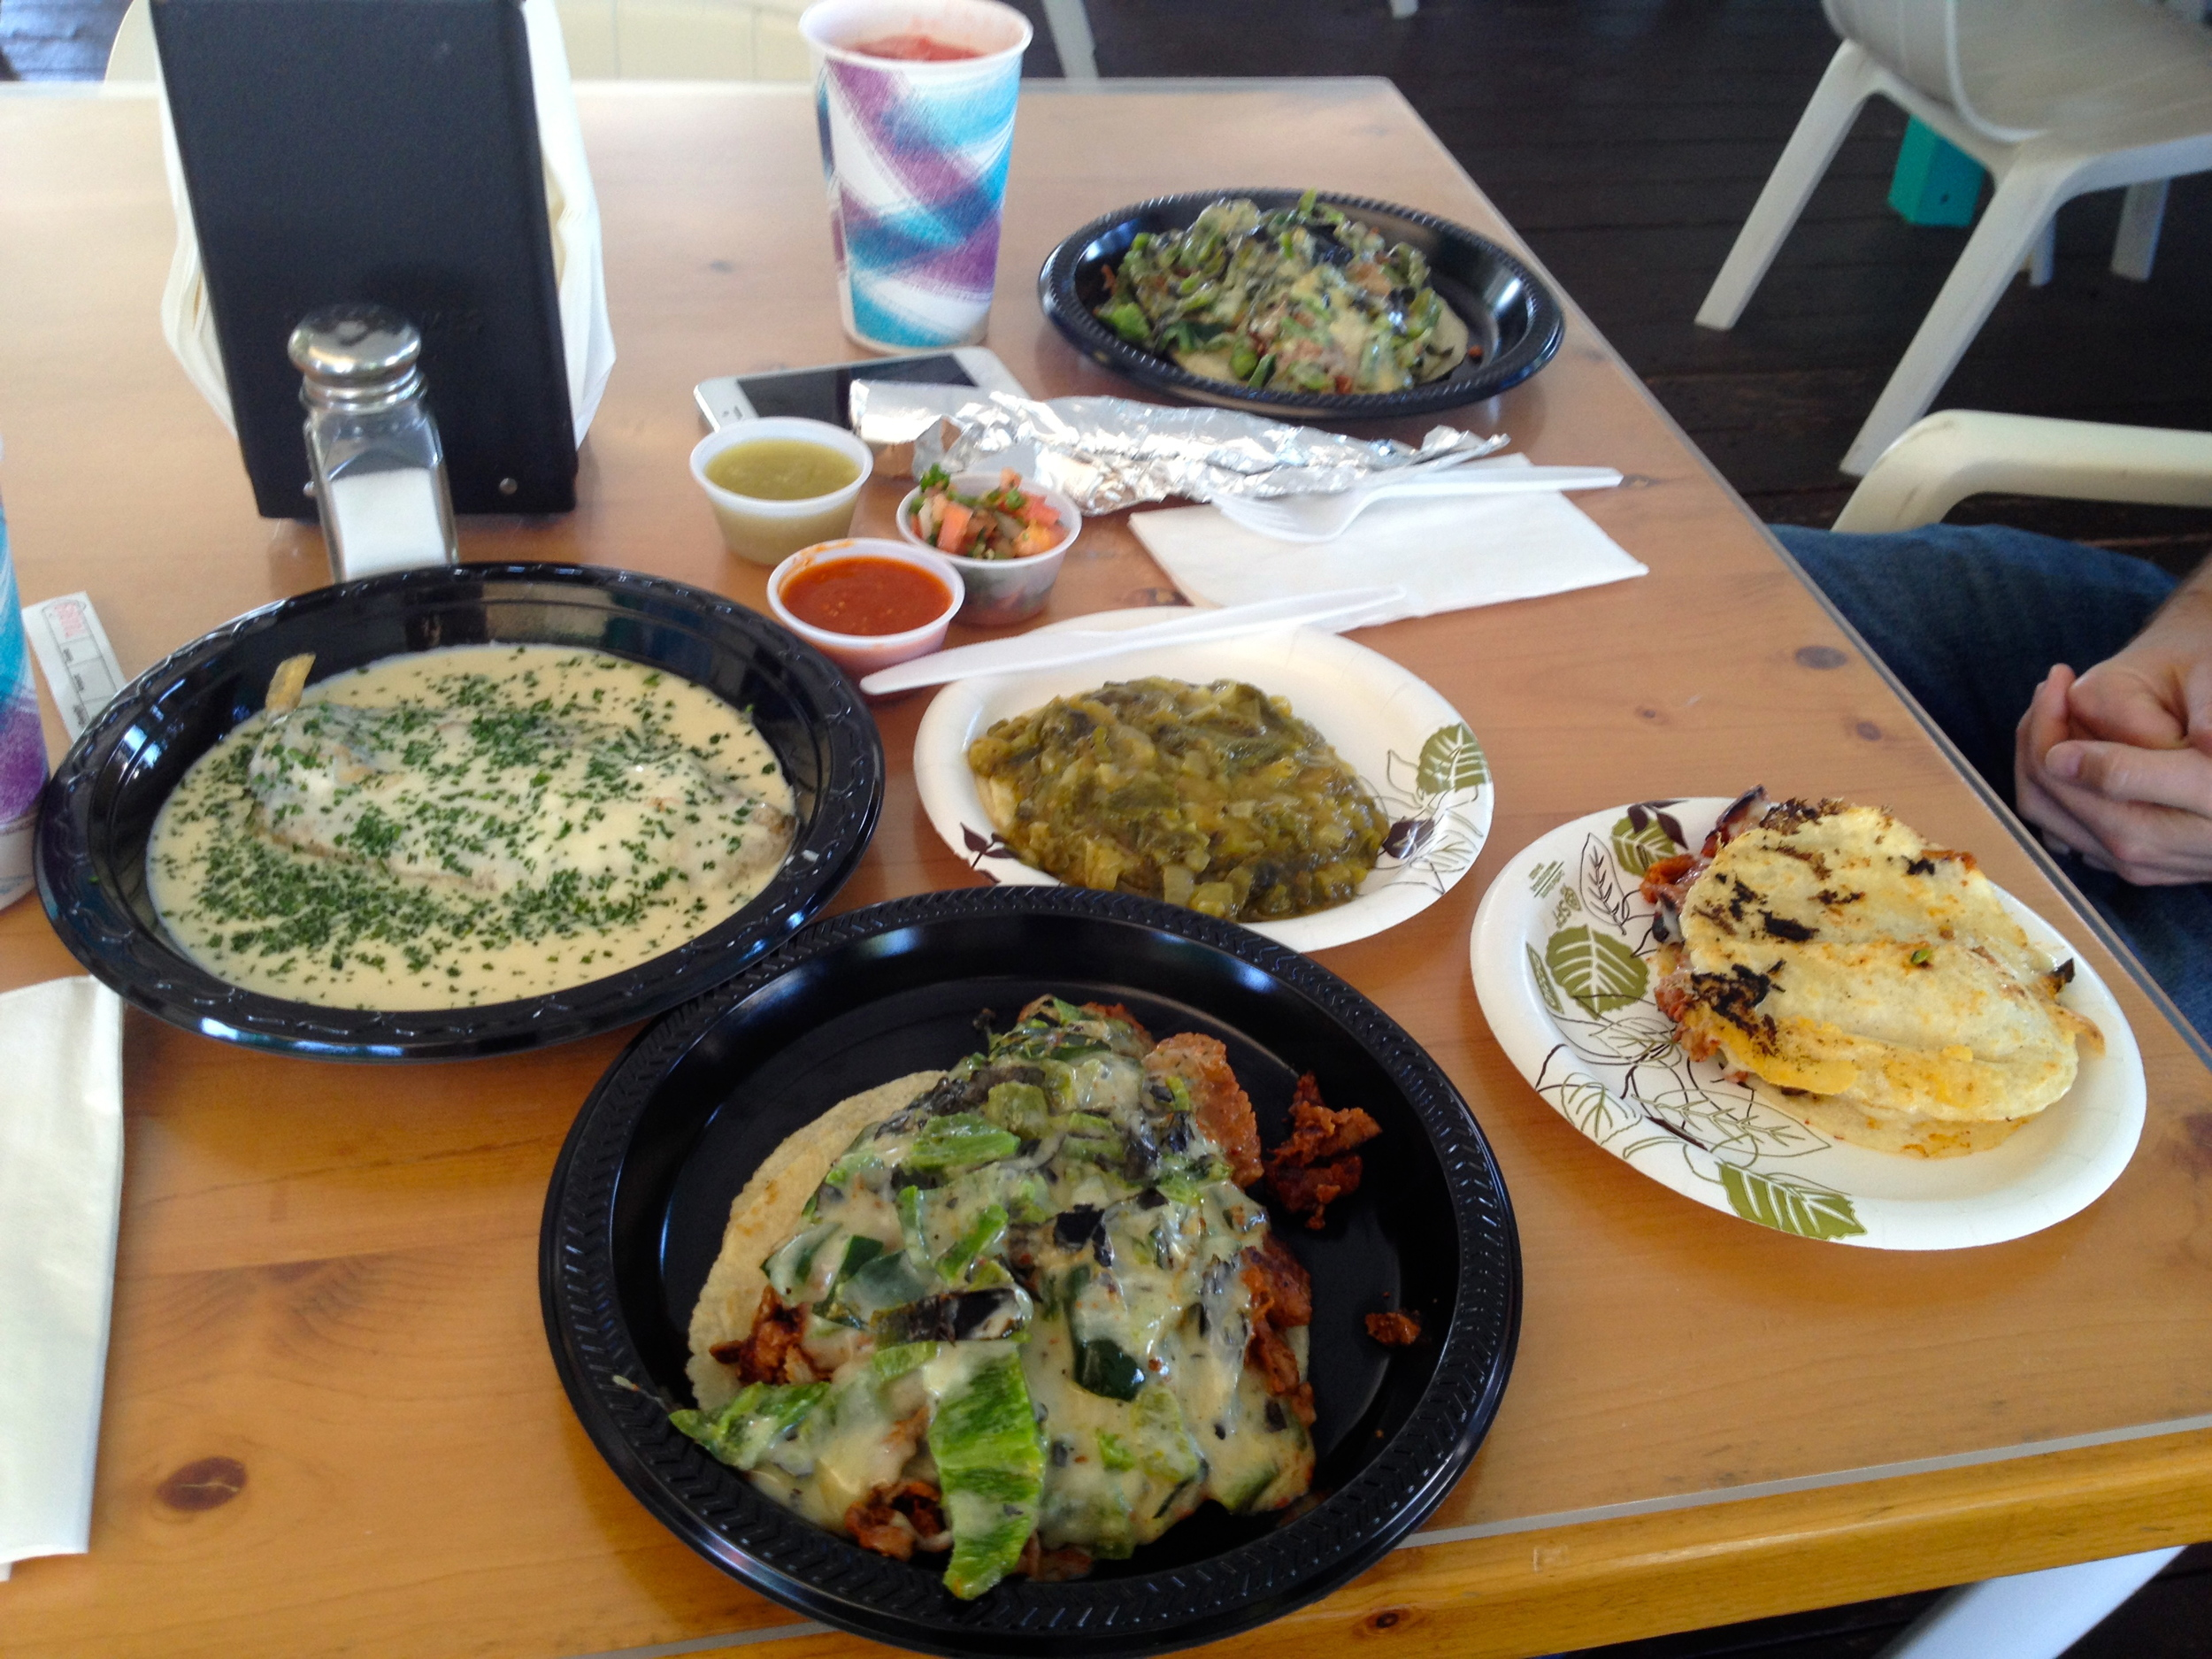 From left to right: Chile relleno, Super-Rica Especial, rajas taco, chorizo quesadilla (and the second Especial in the back)